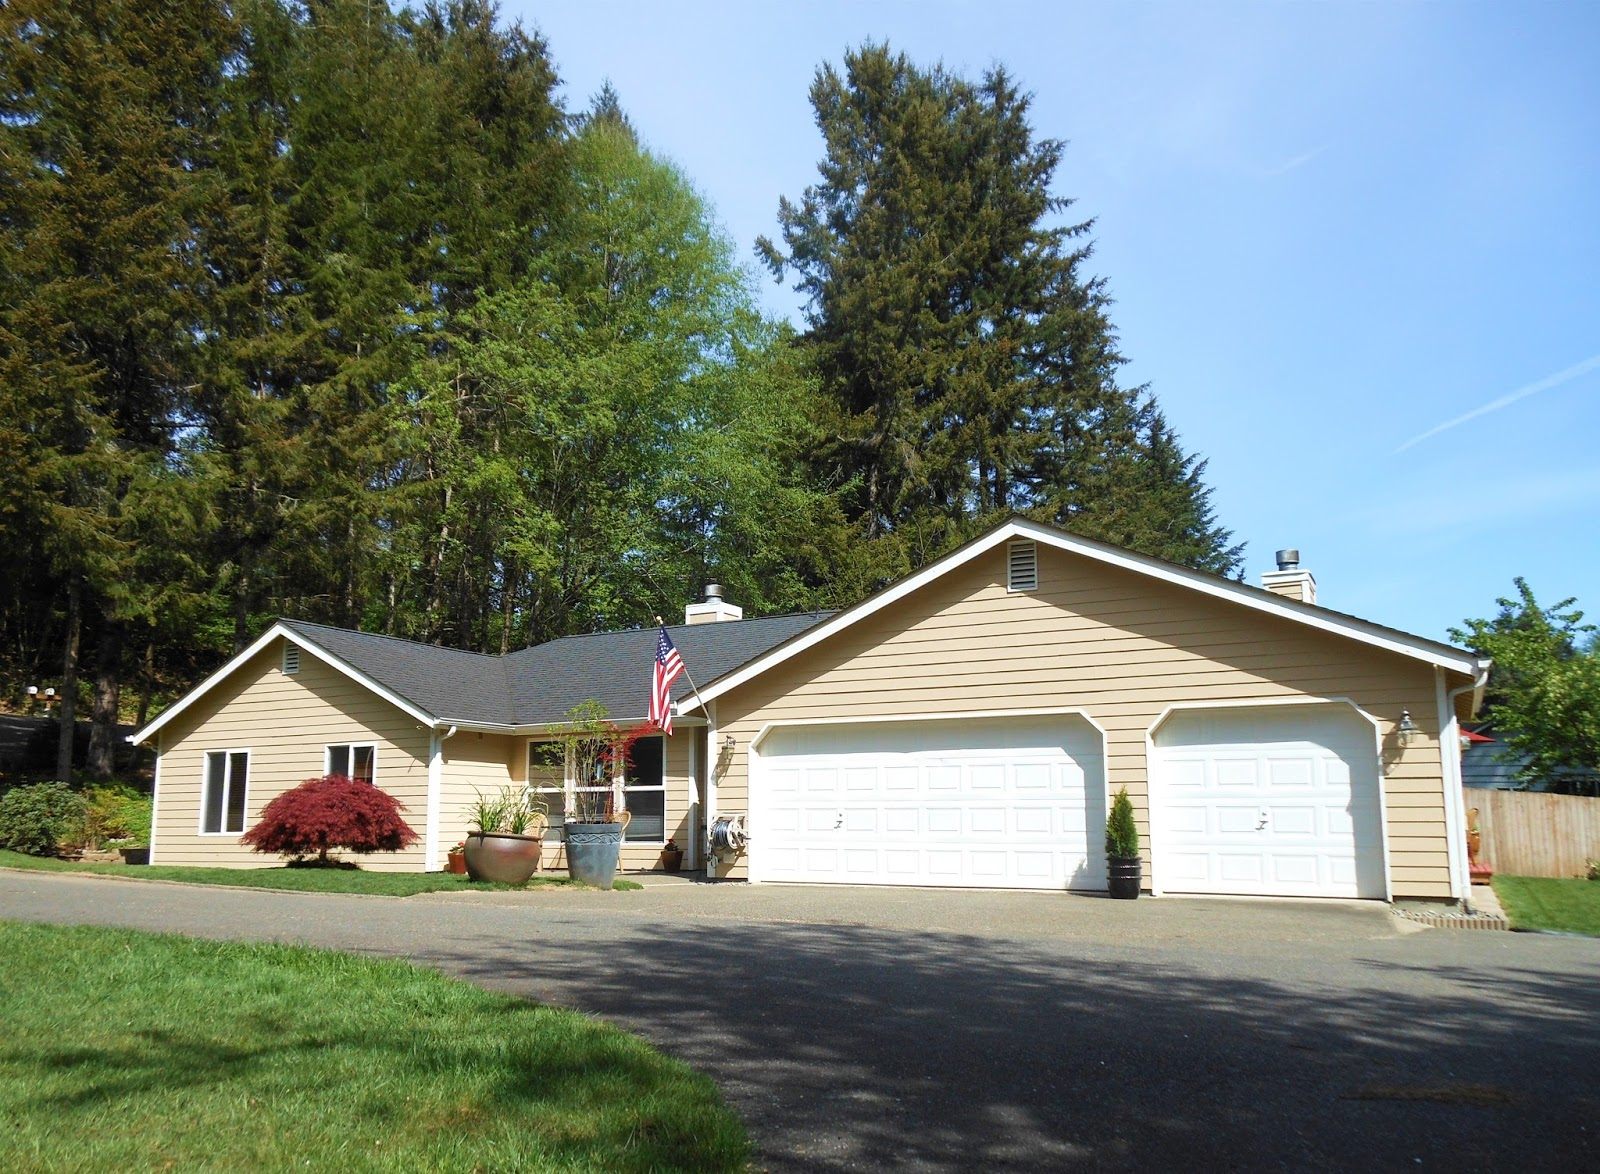 Best homes in wa rambler for sale with 3 car garage 1025 for 3 car garage house for sale